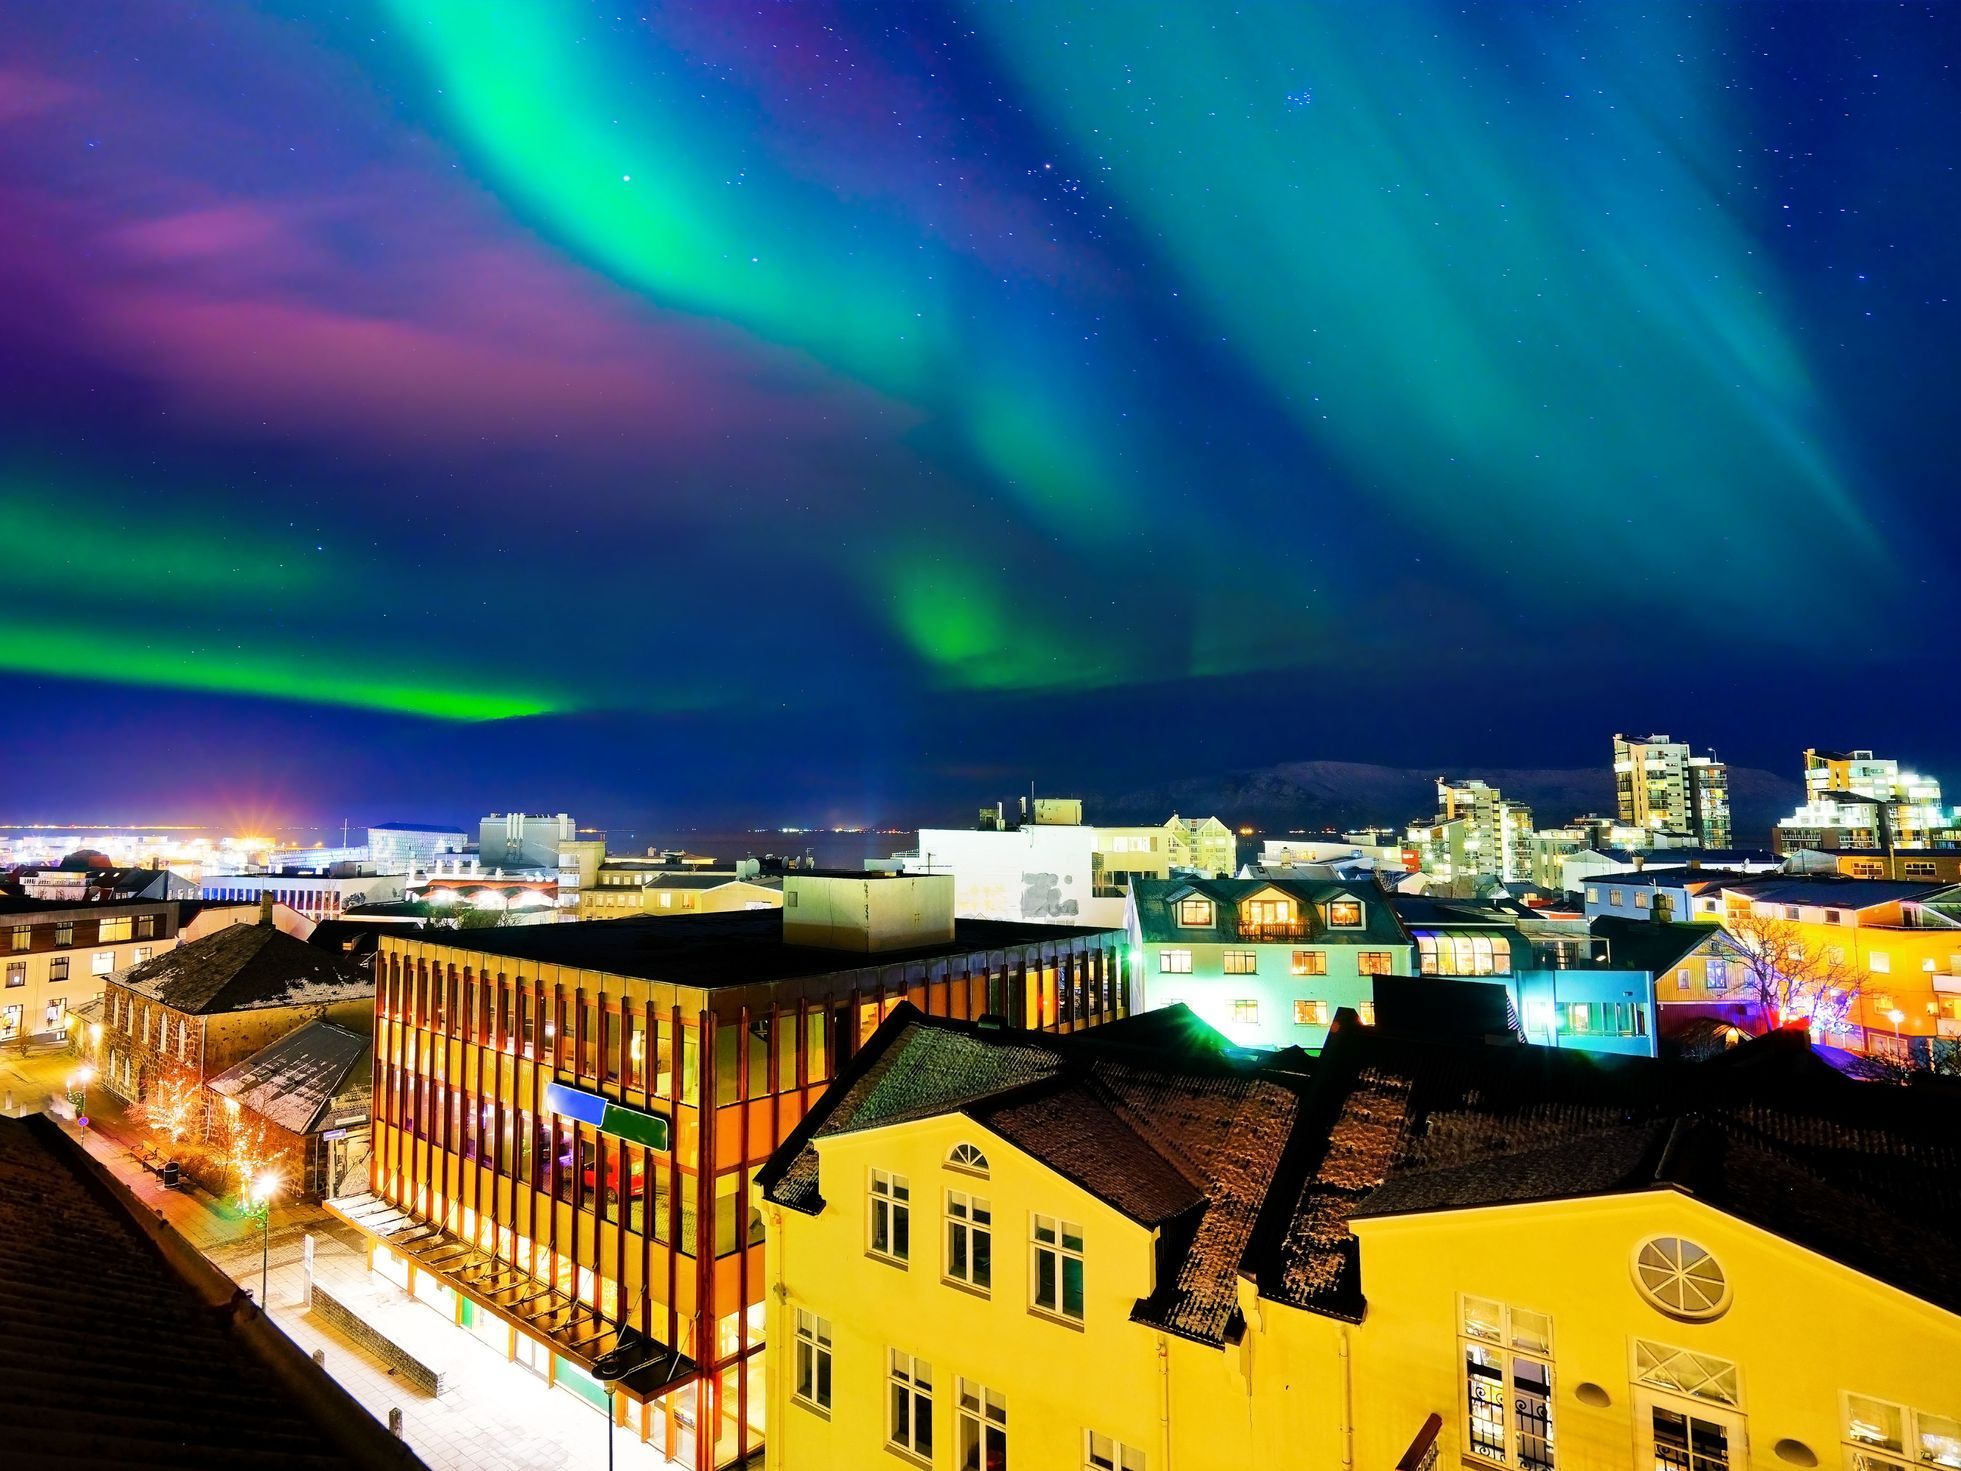 Northern Light From The City Center In Reykjavik Iceland   See the northern  lights, Northern lights, Iceland travel